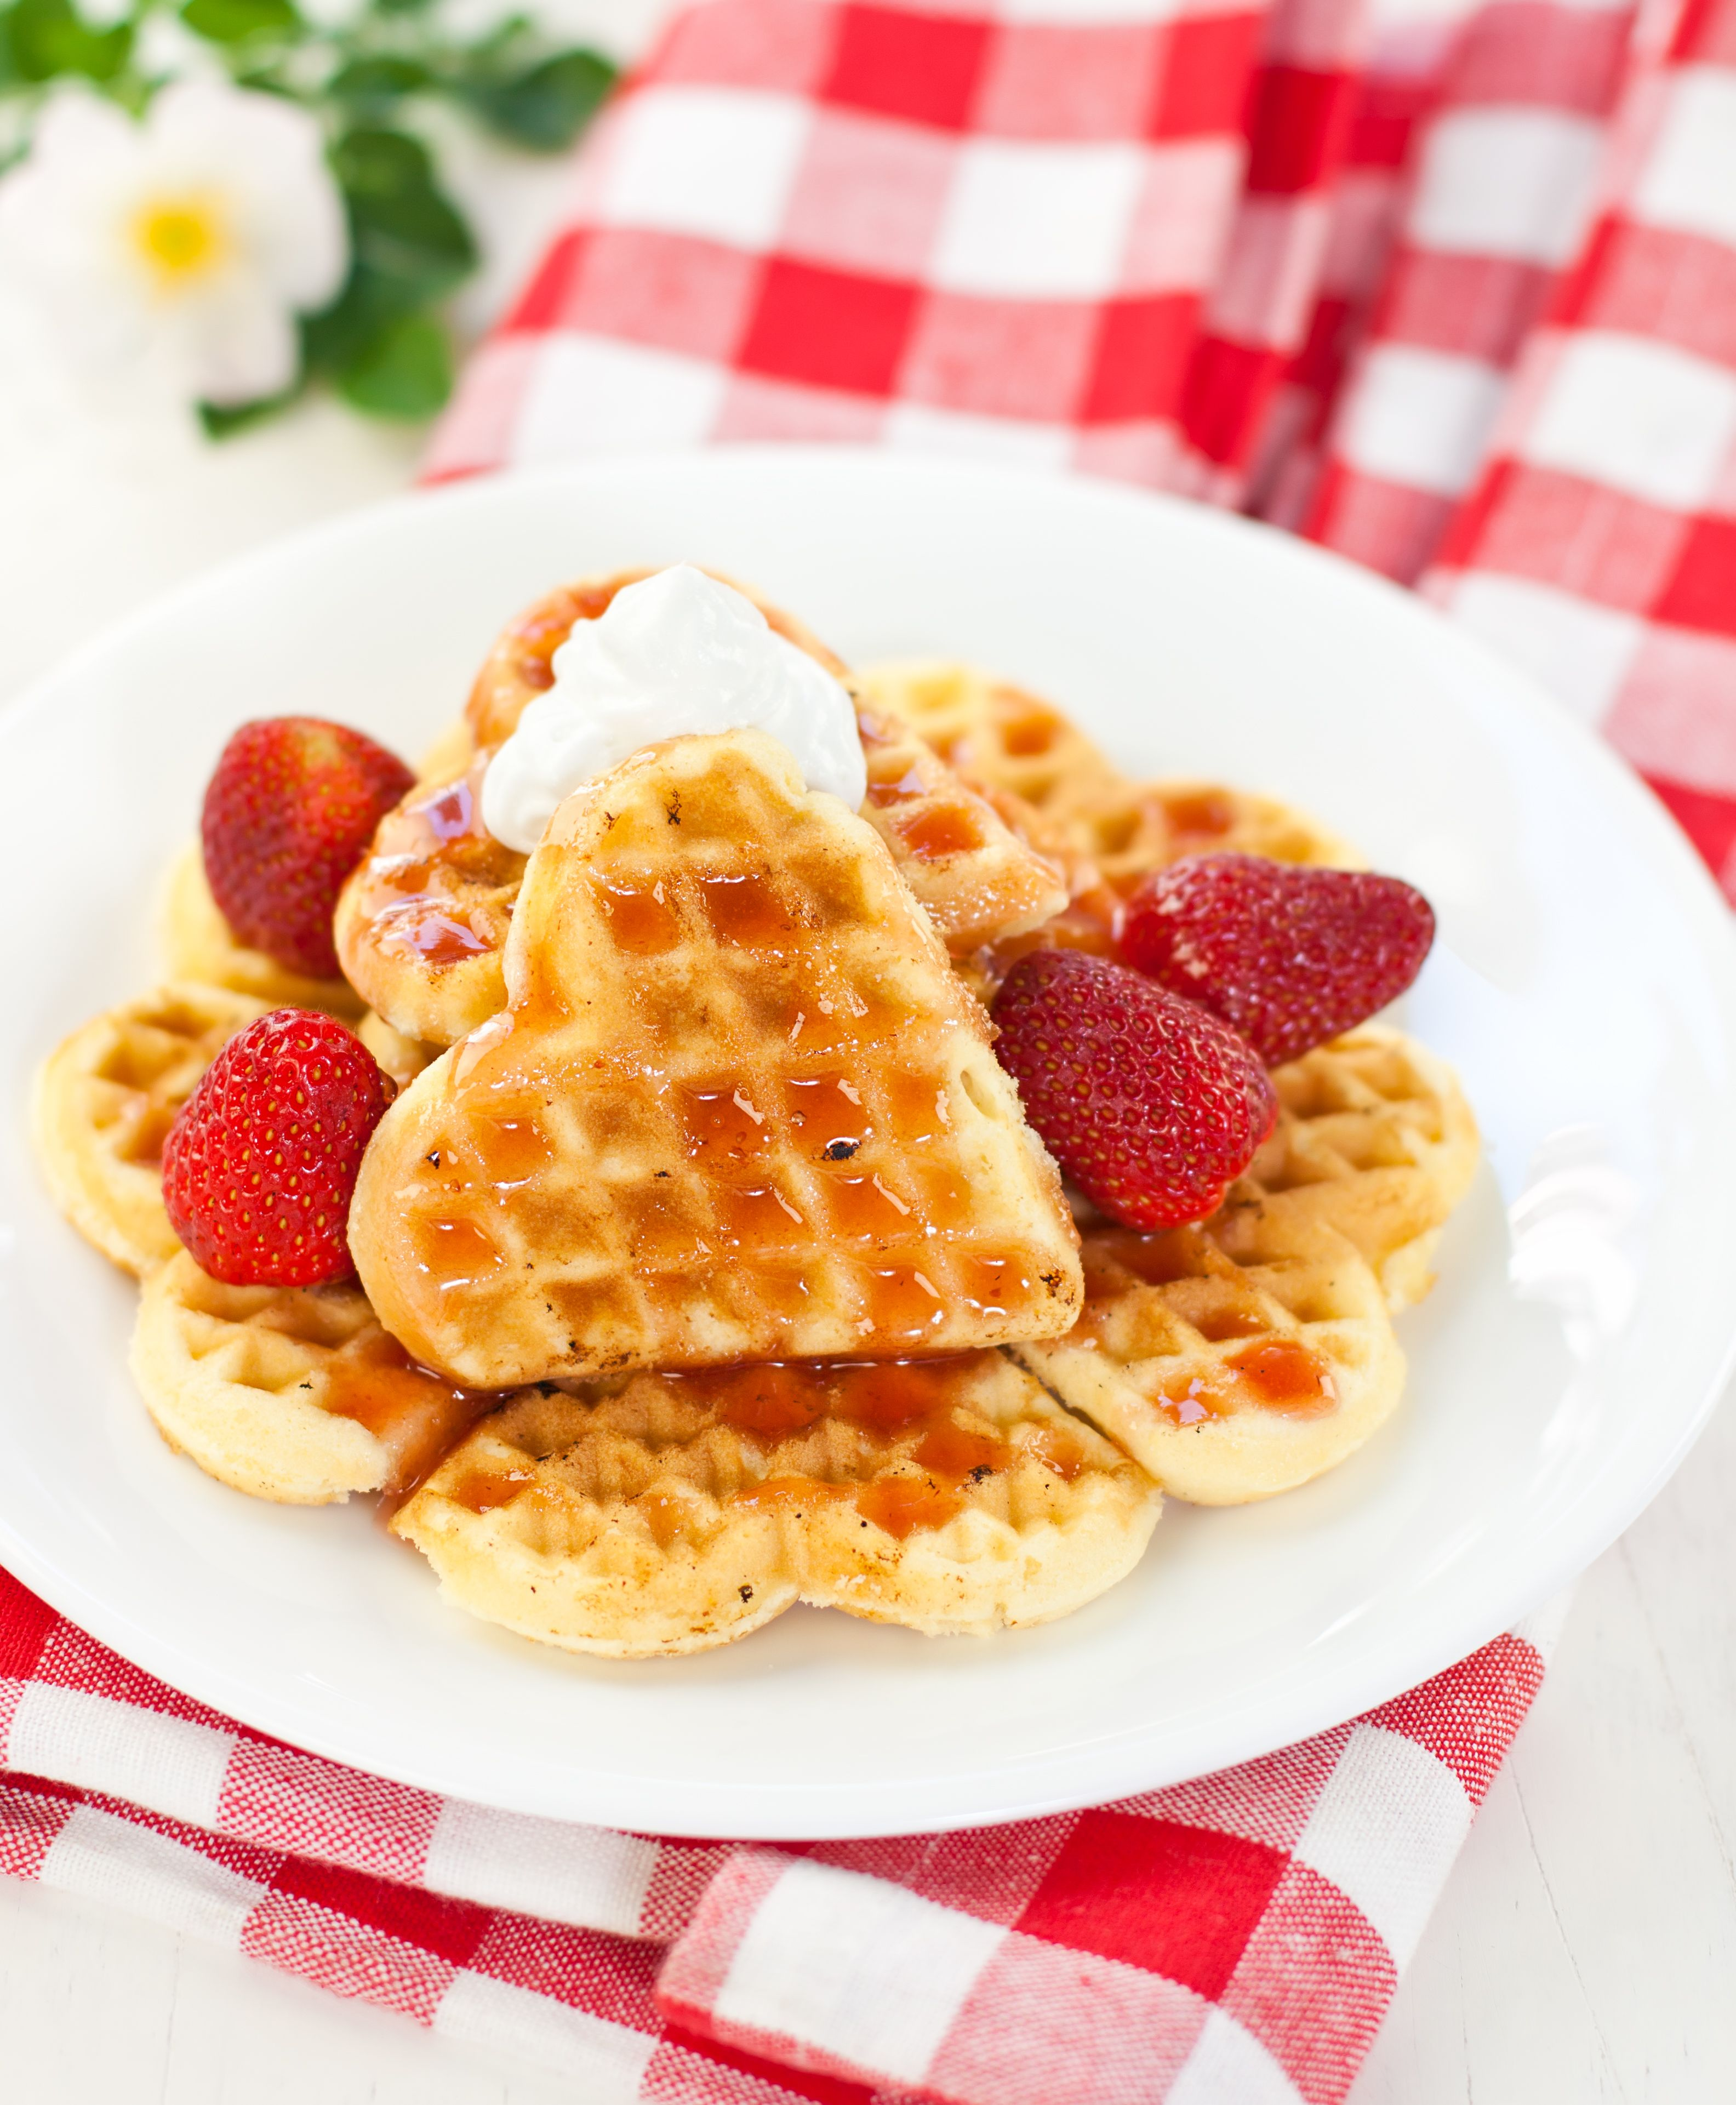 Waffle clipart heart shaped waffle. The best makers waffles